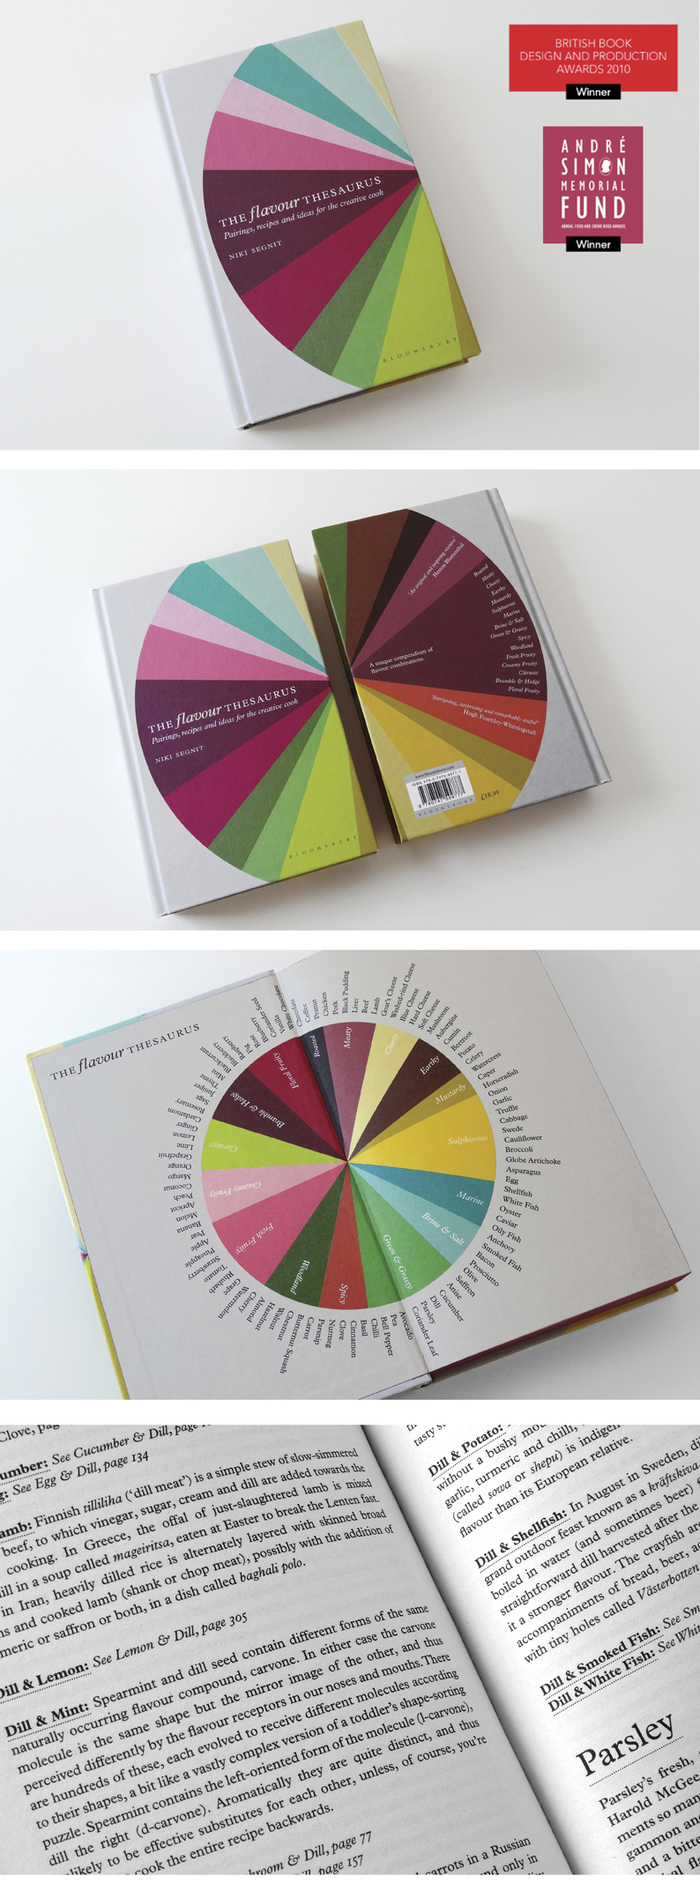 The Flavor Thesaurus by Niki Segnit